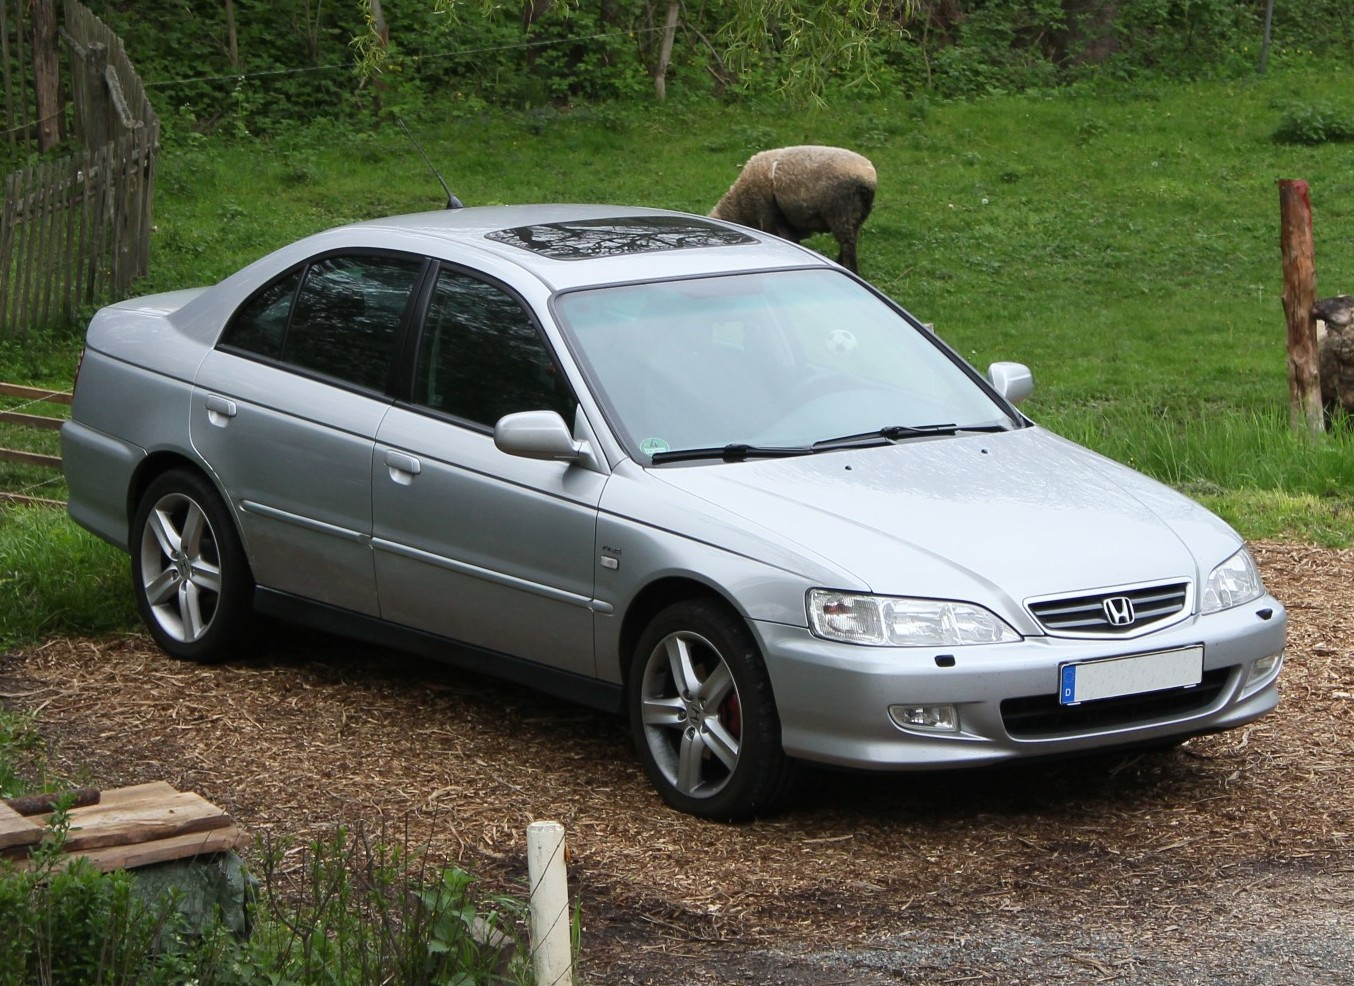 Attractive 93 Honda Accord Mpg Picture Collection - Classic Cars ...